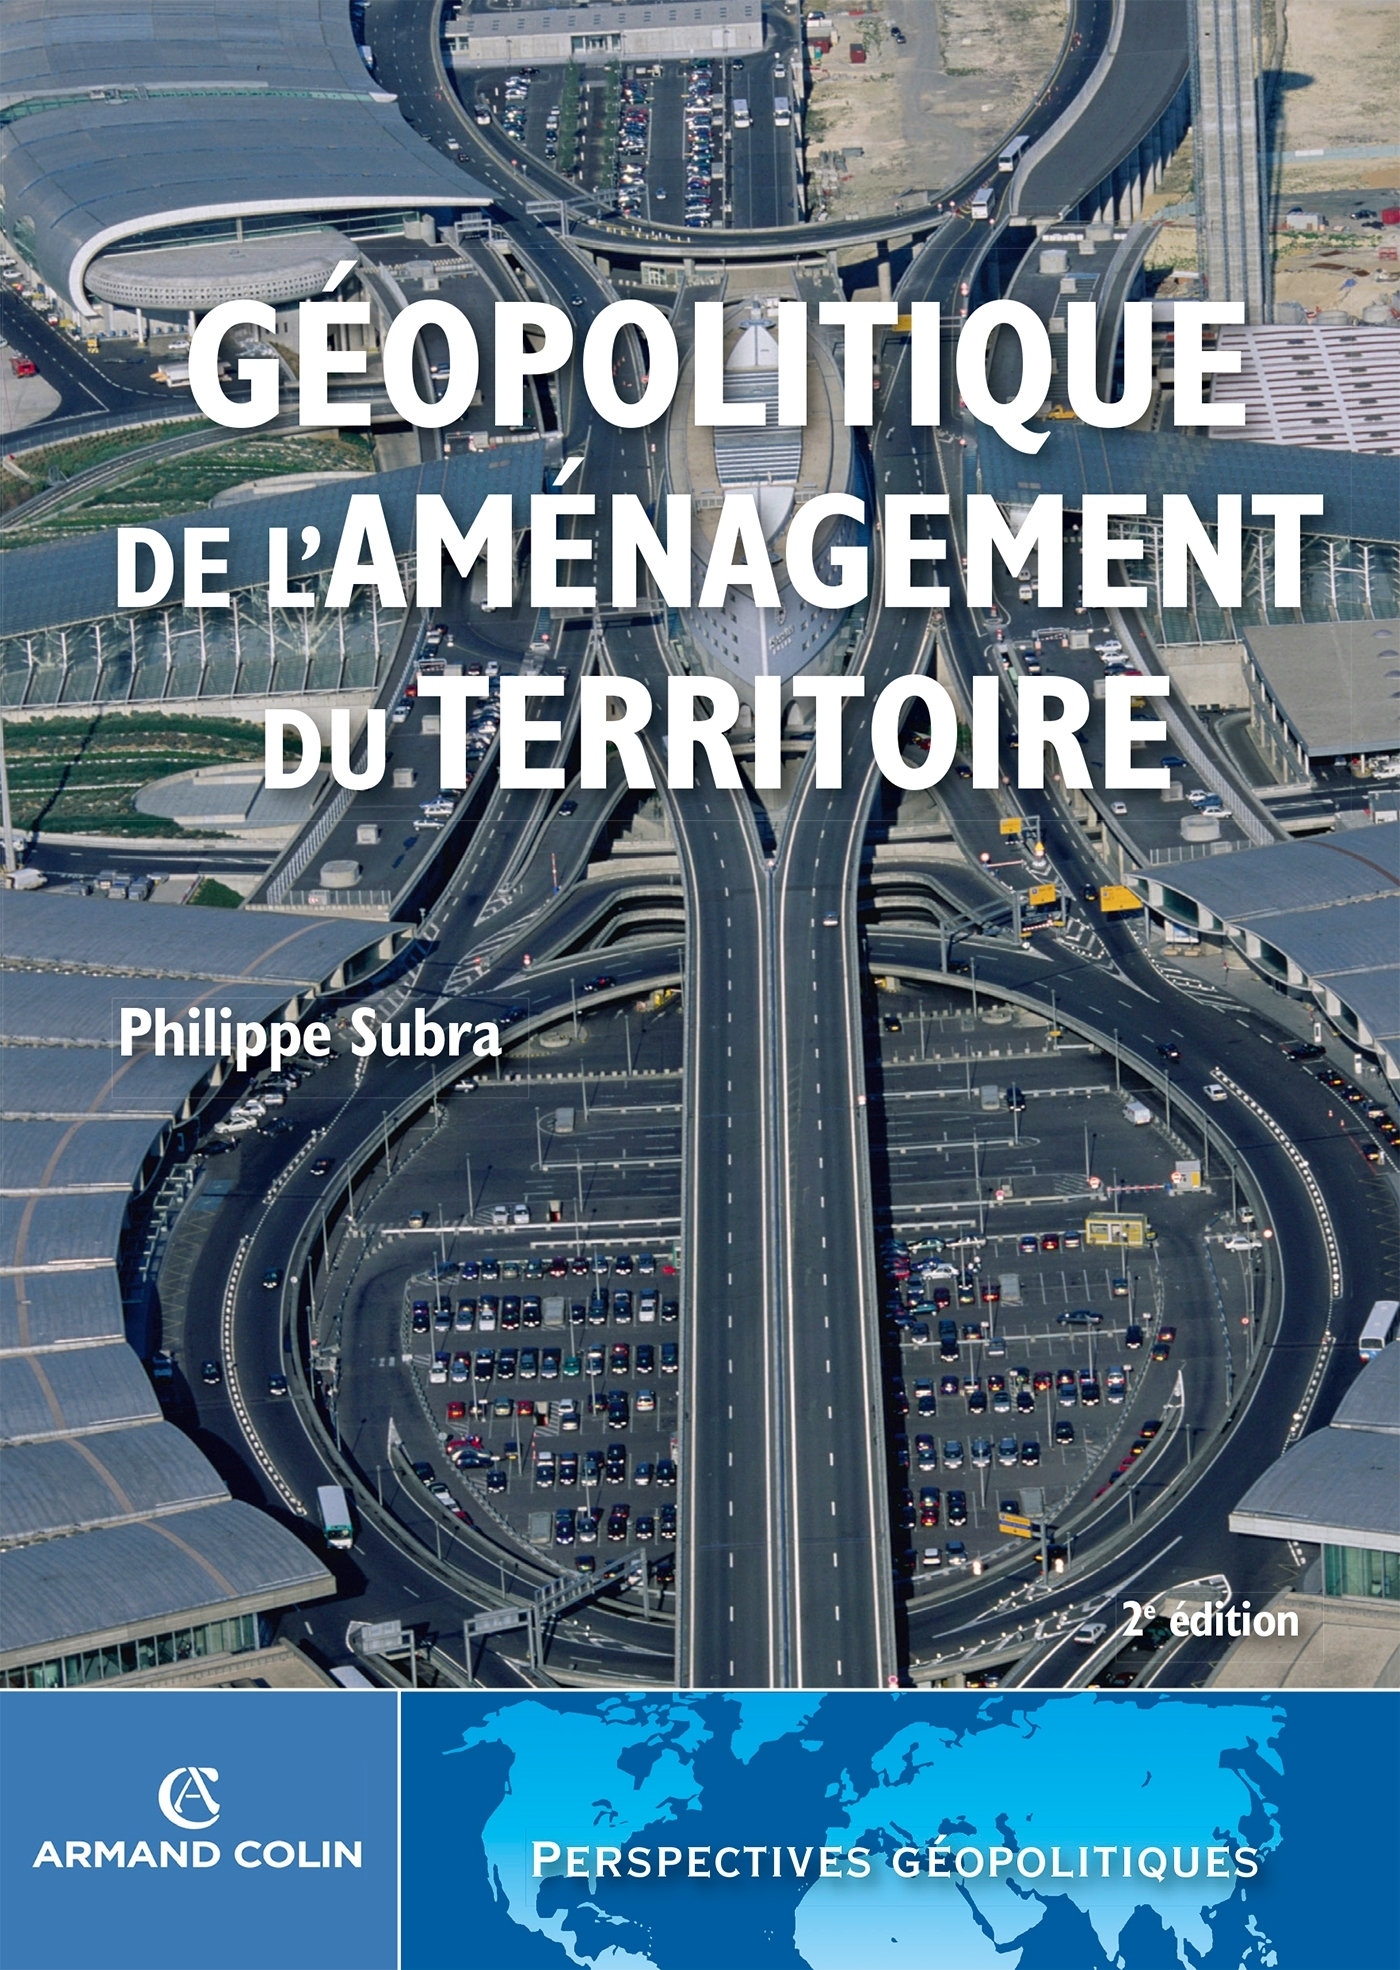 GEOPOLITIQUE DE L'AMENAGEMENT DU TERRITOIRE - 2 ED.